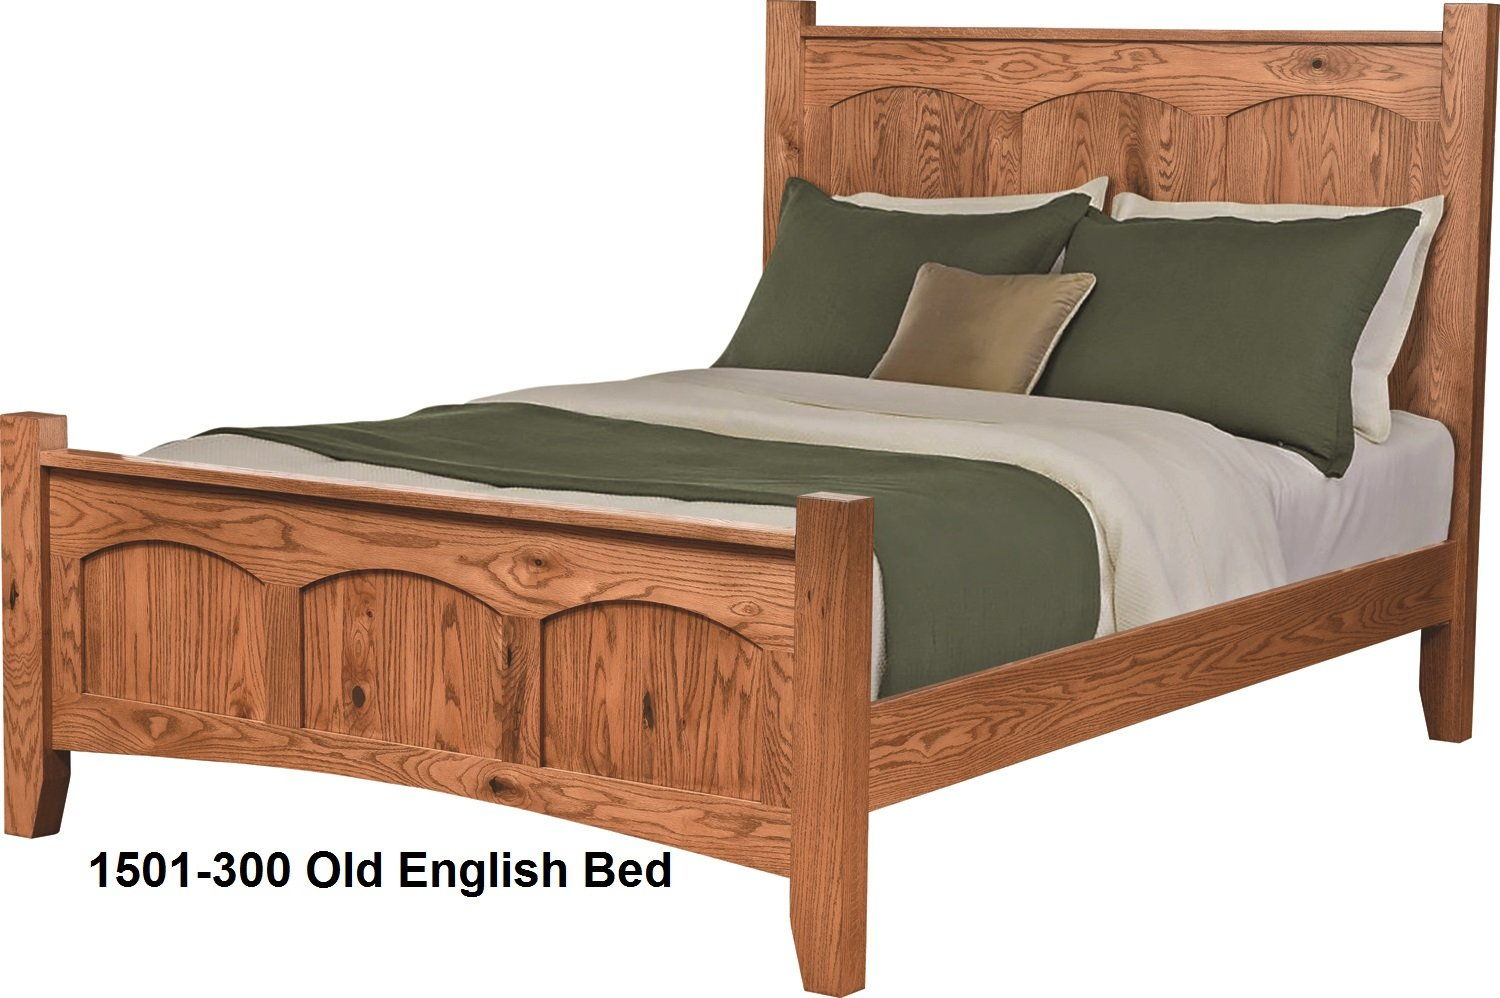 1501-300 Old English Bed